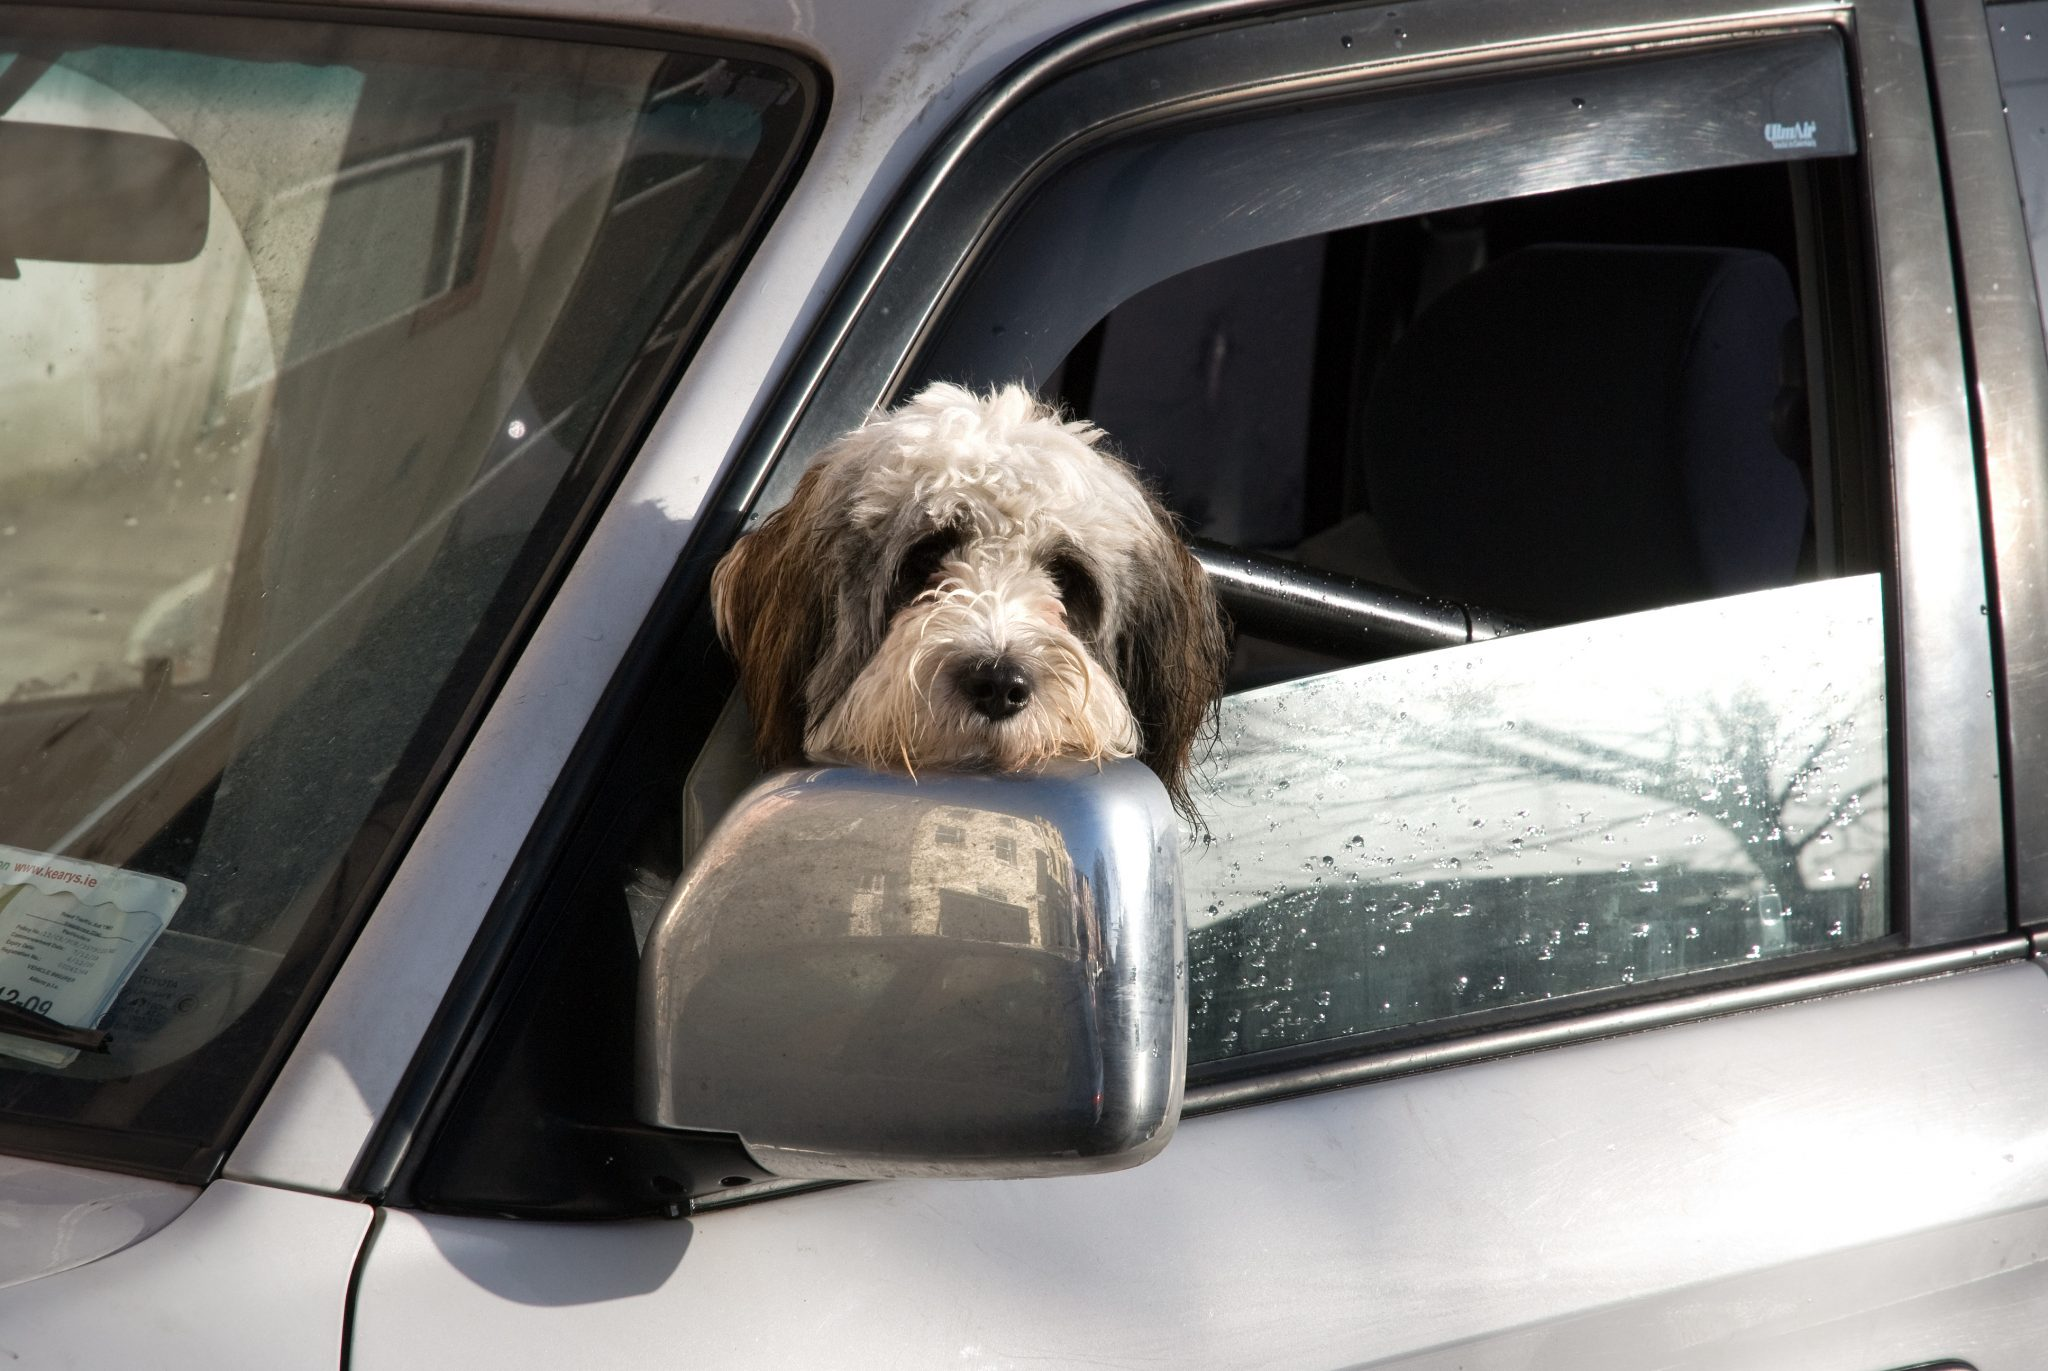 Boston Auto Show >> Dogs in Hot Cars - The News Wheel